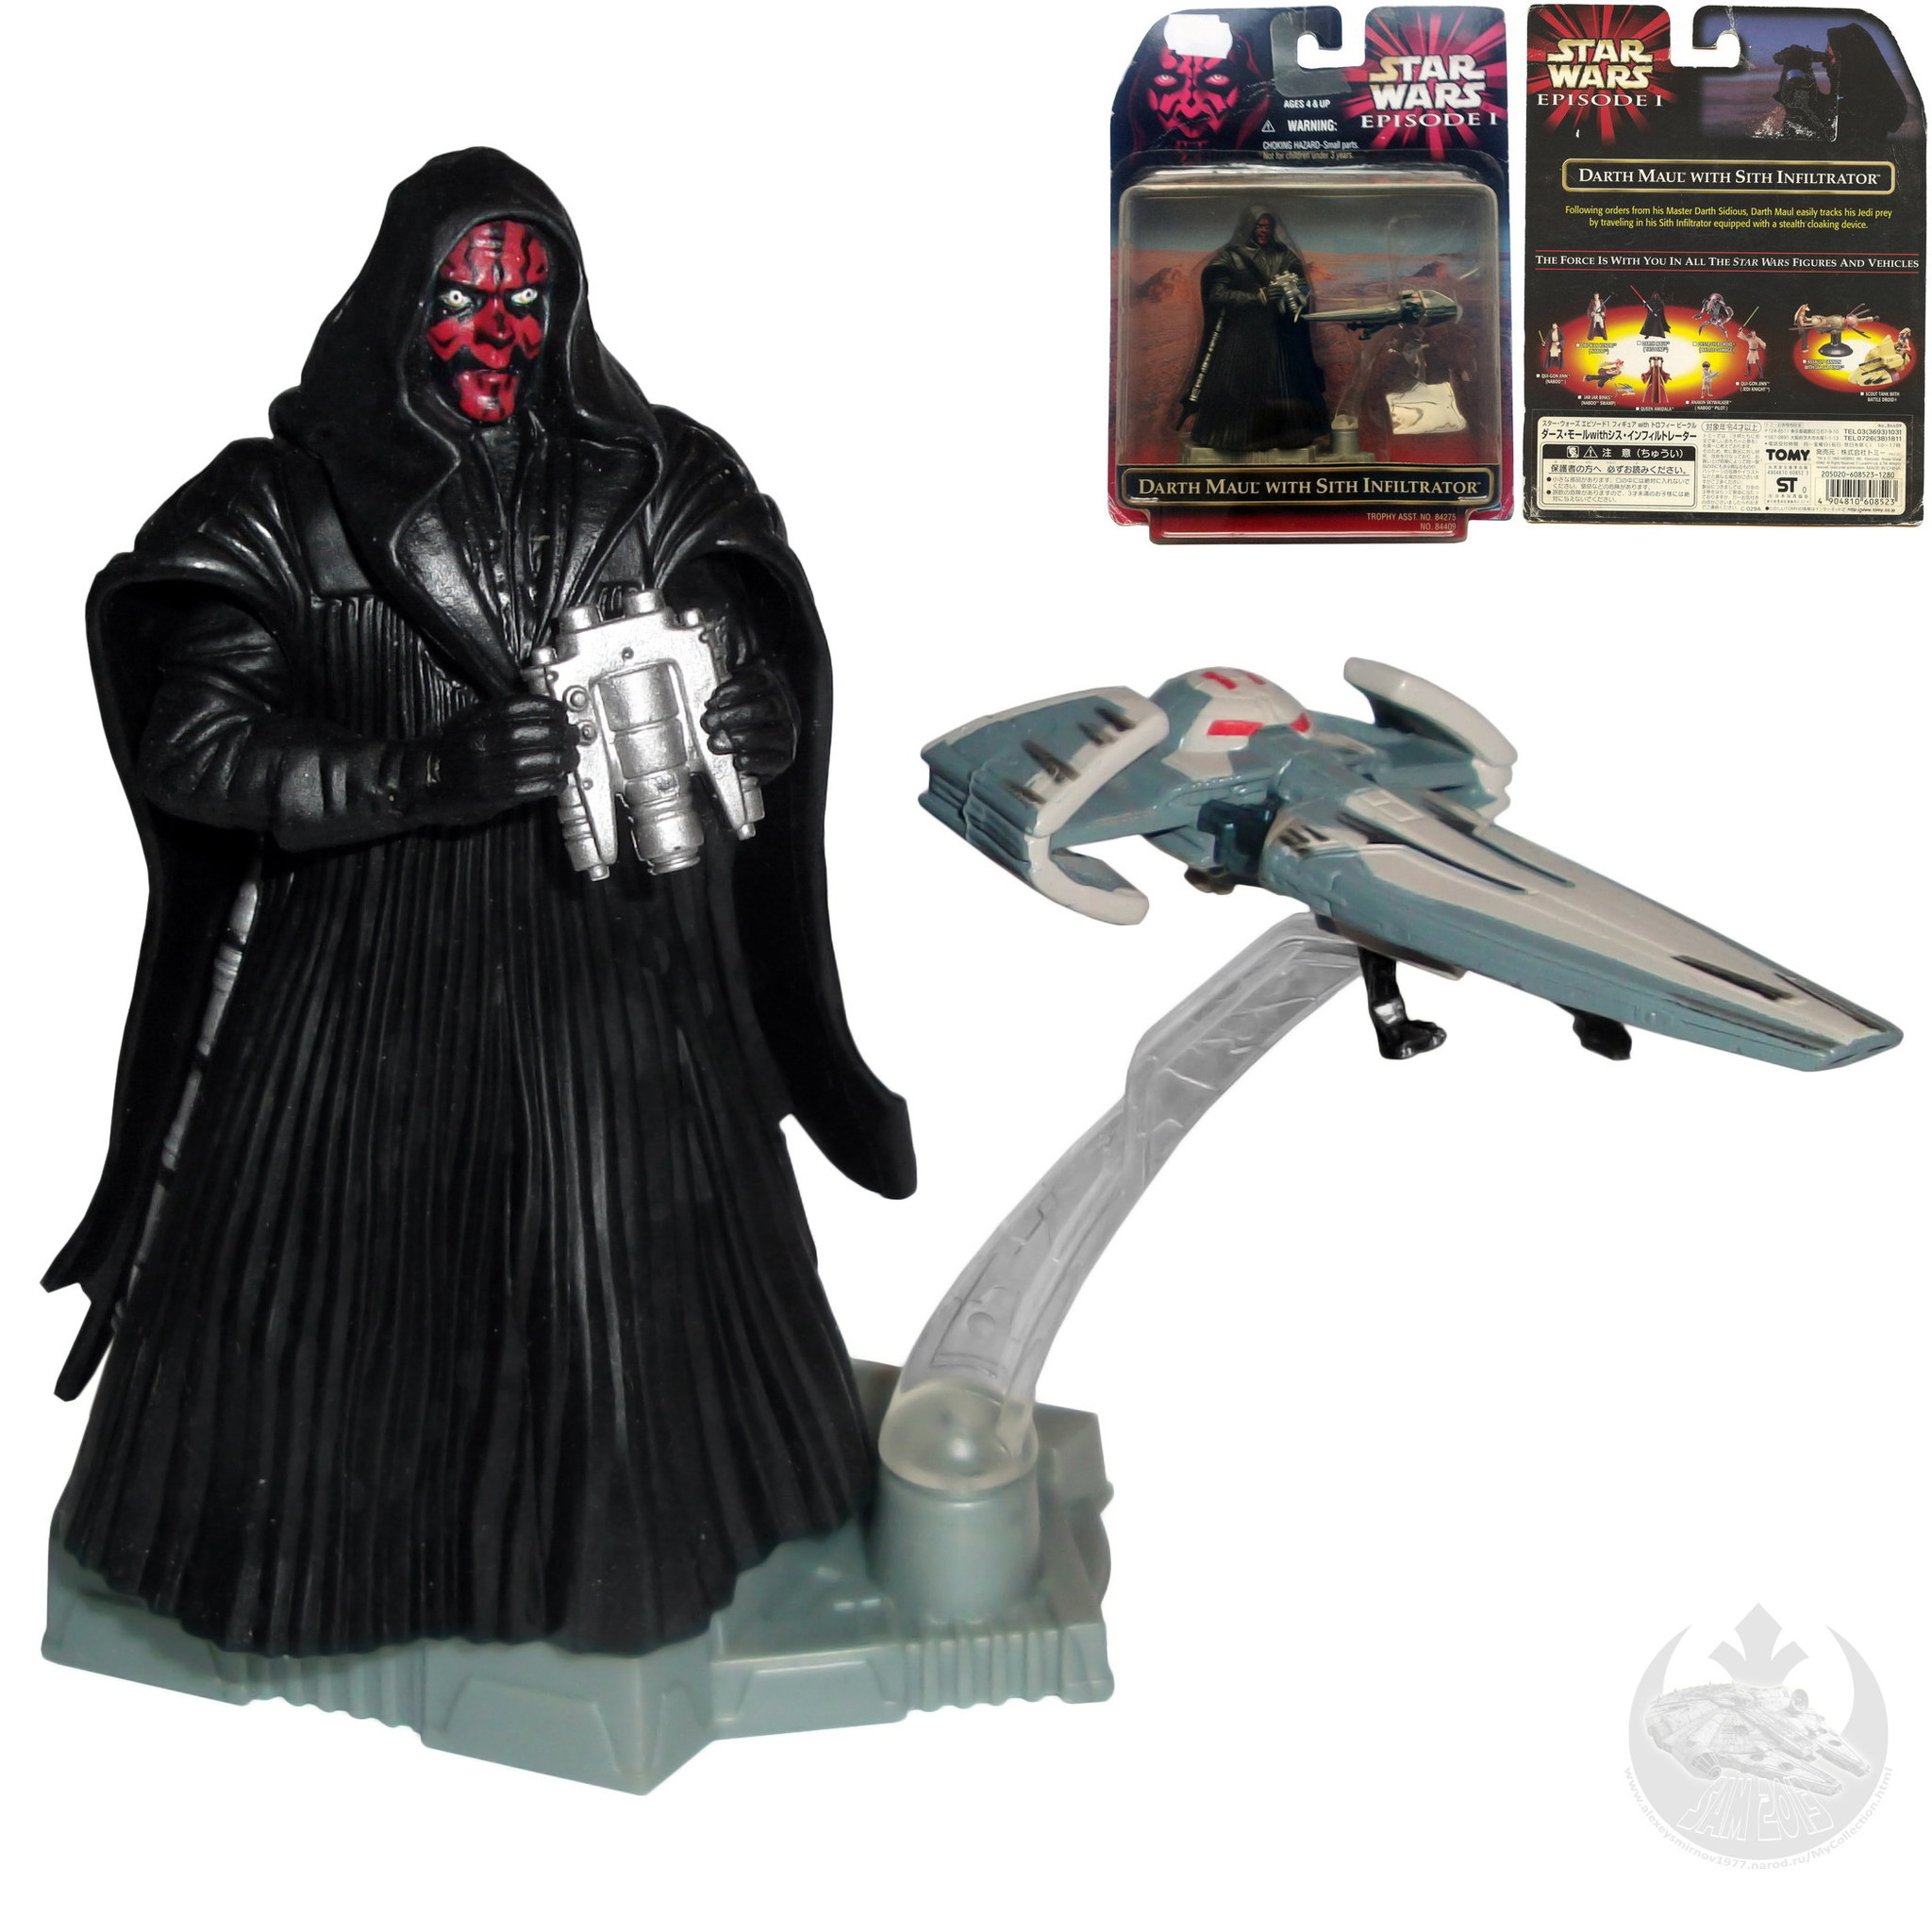 Star Wars Episode I - Darth Maul With Sith Infiltrator